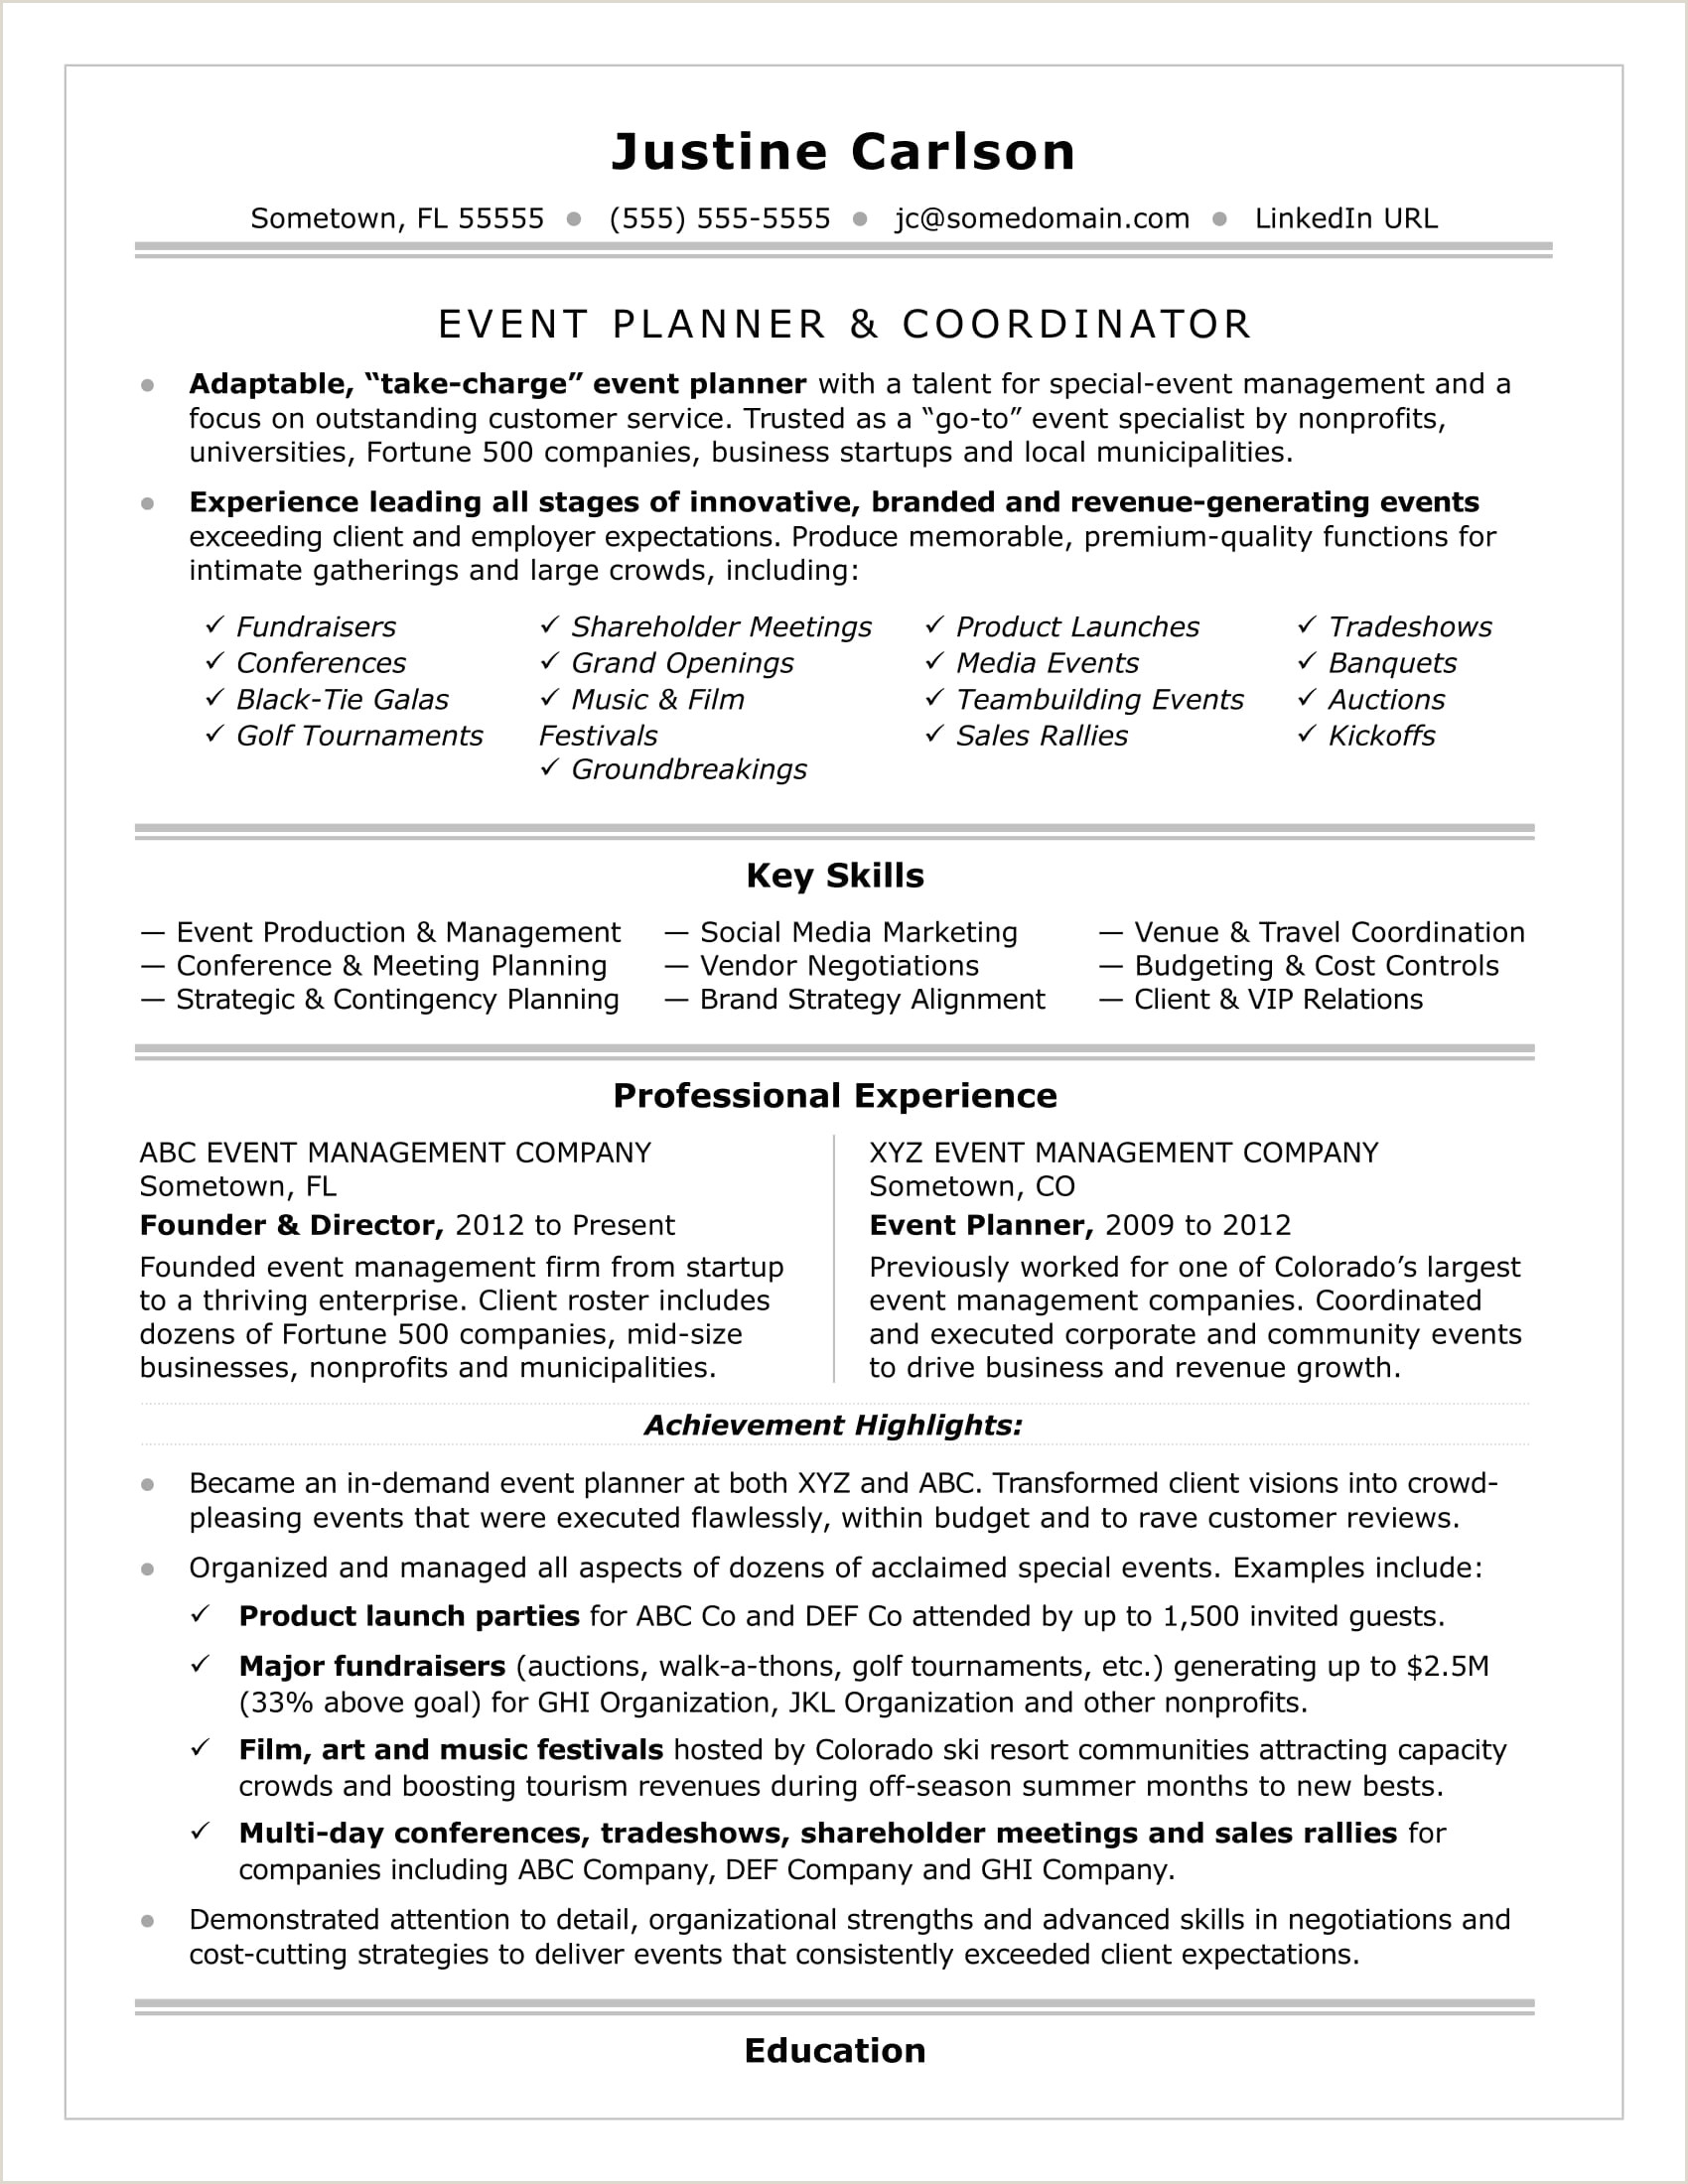 Entry Level event Planning Resume Cv Template events Coordinator Zaloyrpentersdaughter